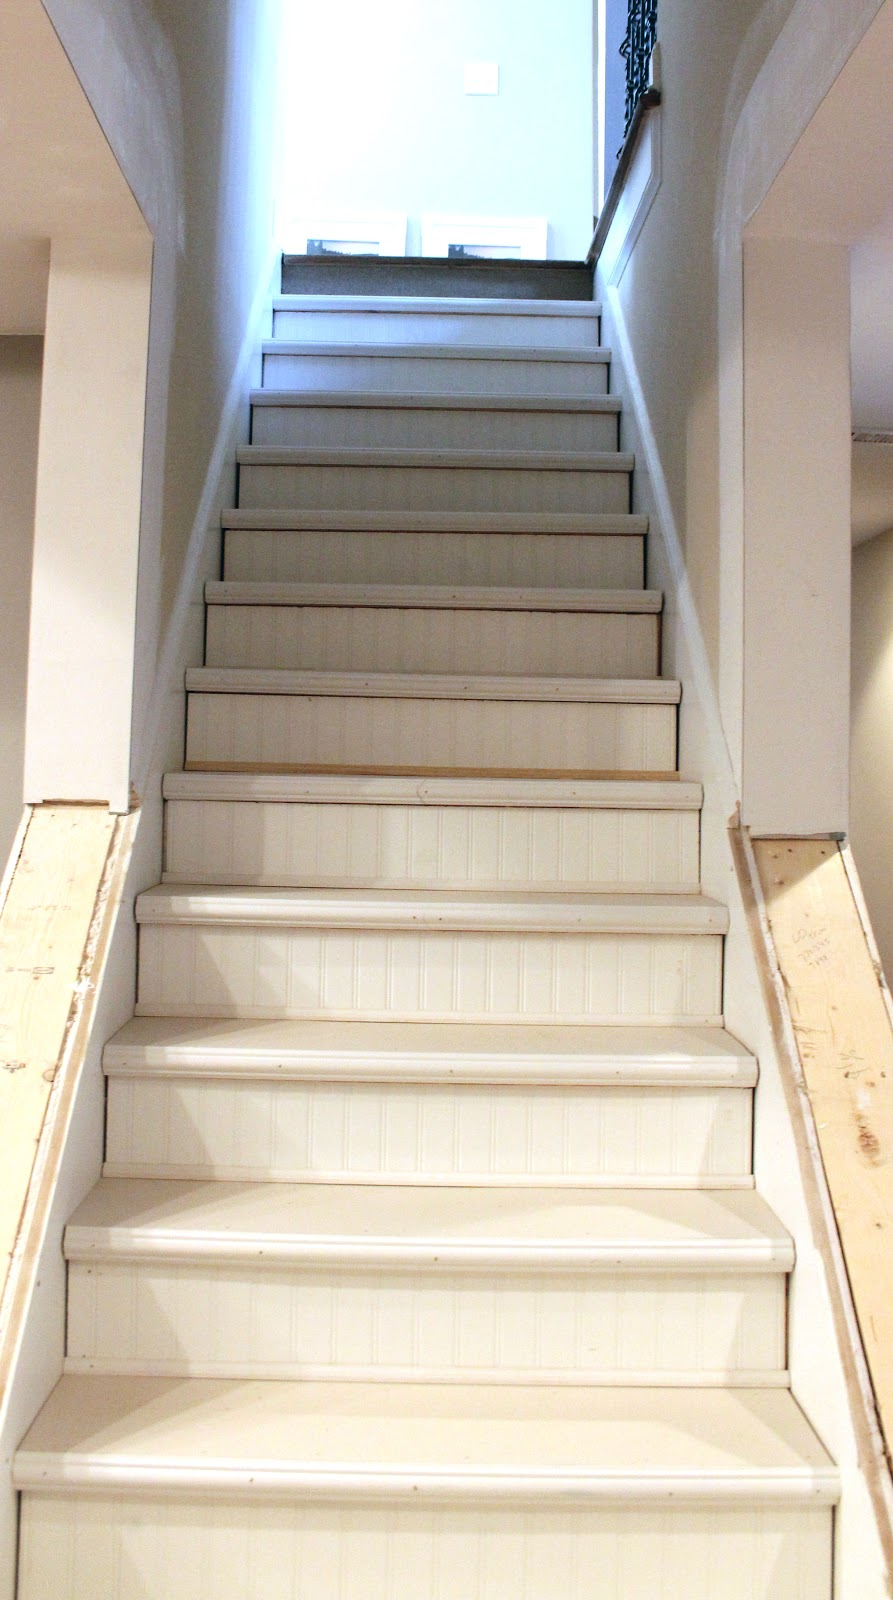 My Enroute Life *Gly Basement Stairs Update | Adding Stairs To Basement